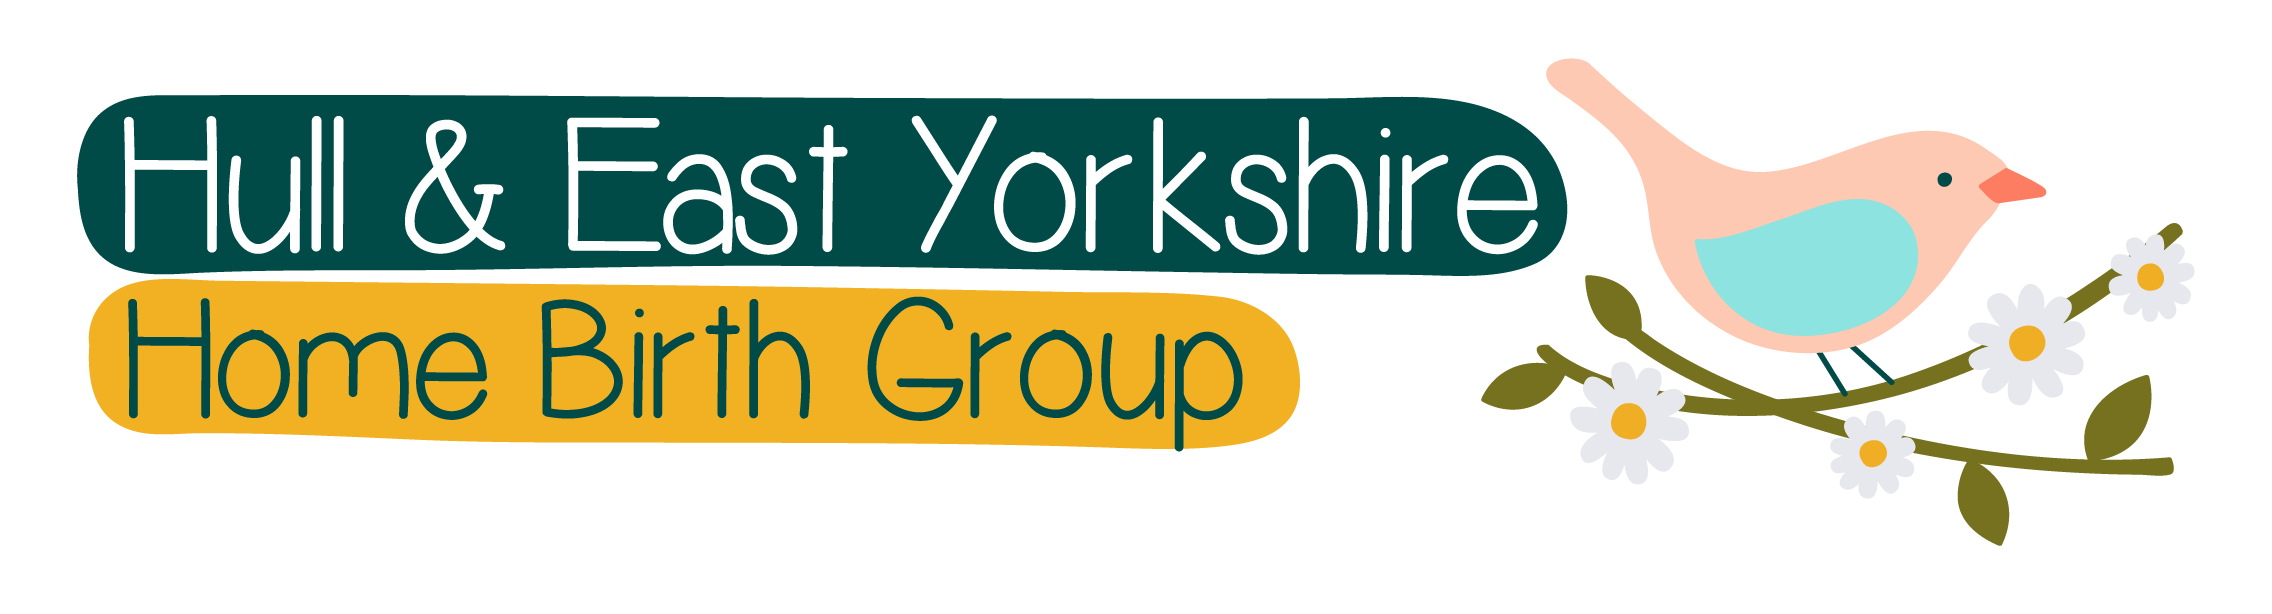 Hull & East Yorkshire Home Birth Group -